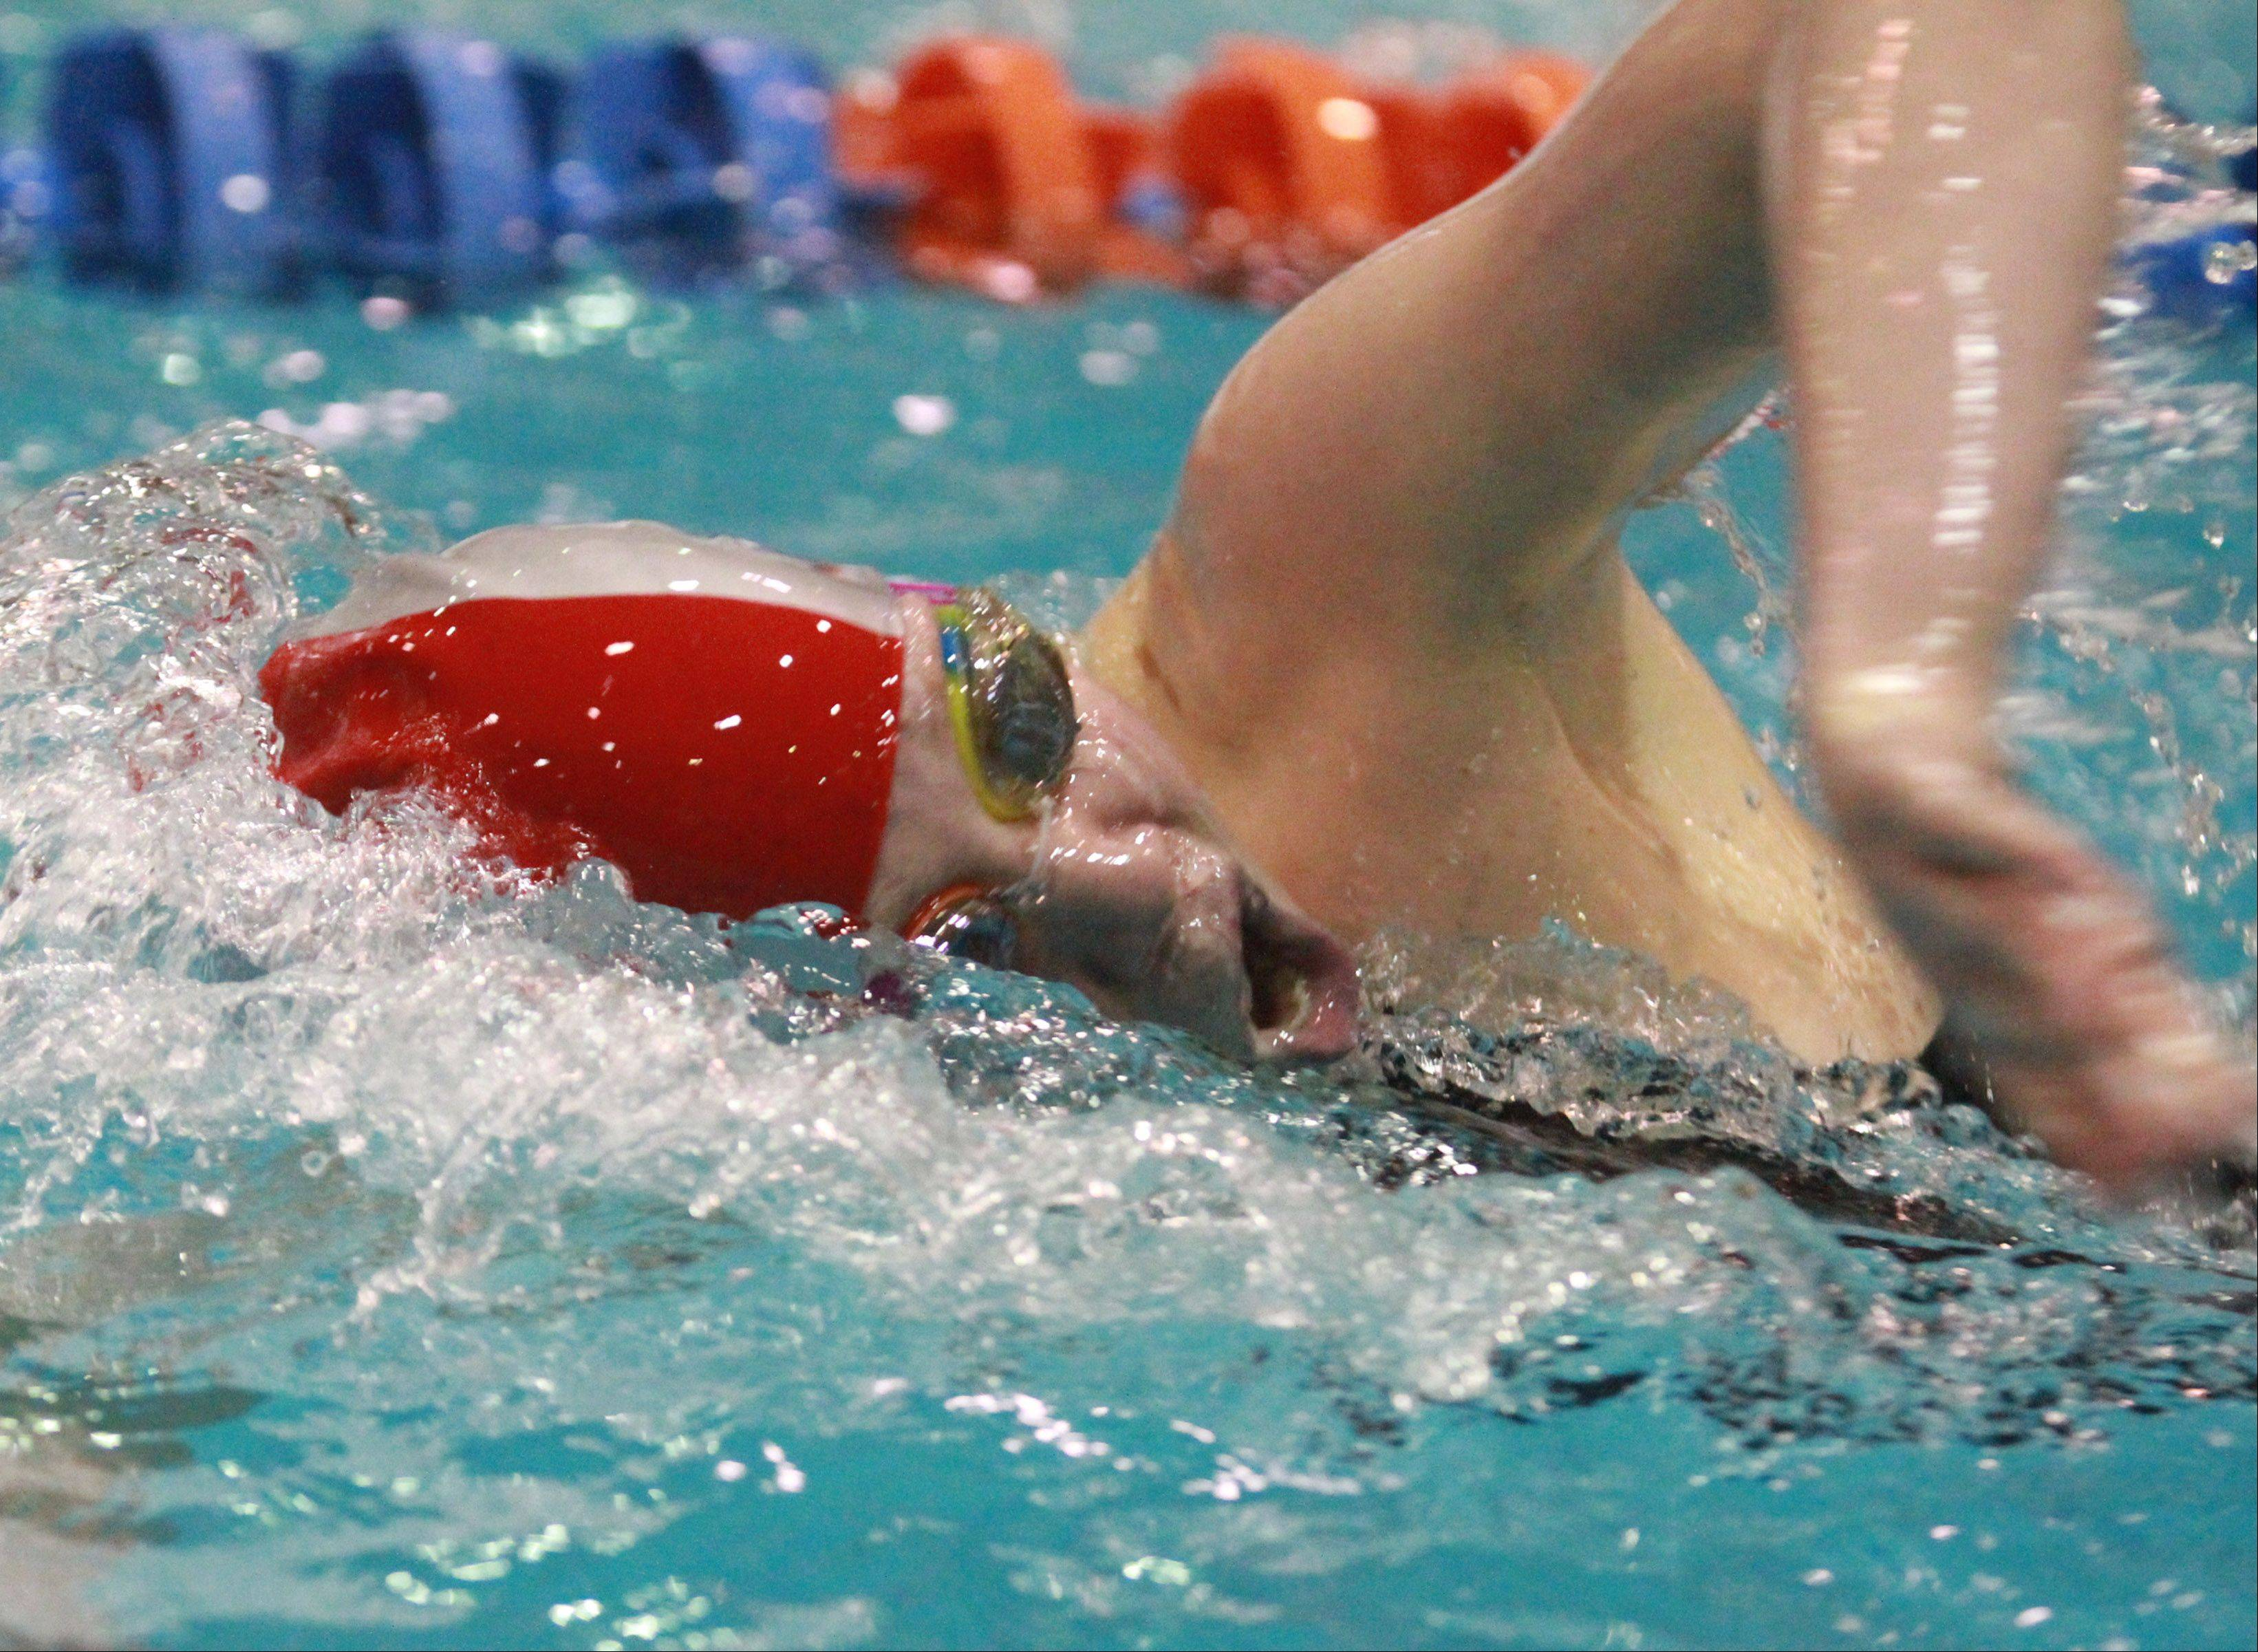 Mundelein's Erin Falconer placed fourth in the 200-yard freestyle at the IHSA state championships in Evanston on Saturday.